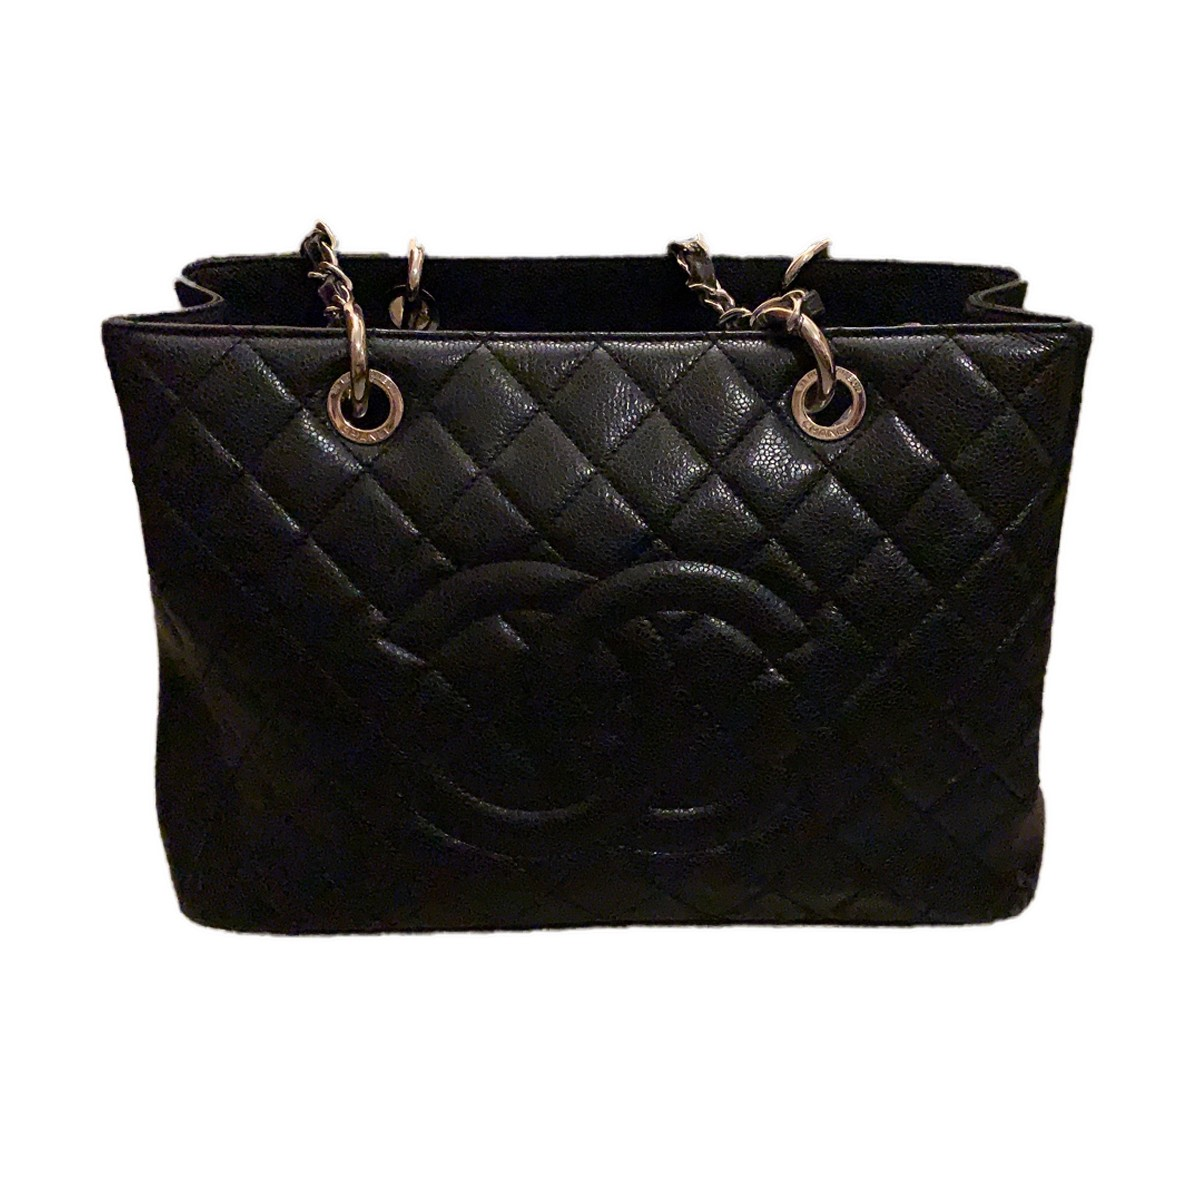 7731ed67dc9b CHANEL large shopping bag in caviar quilted leather